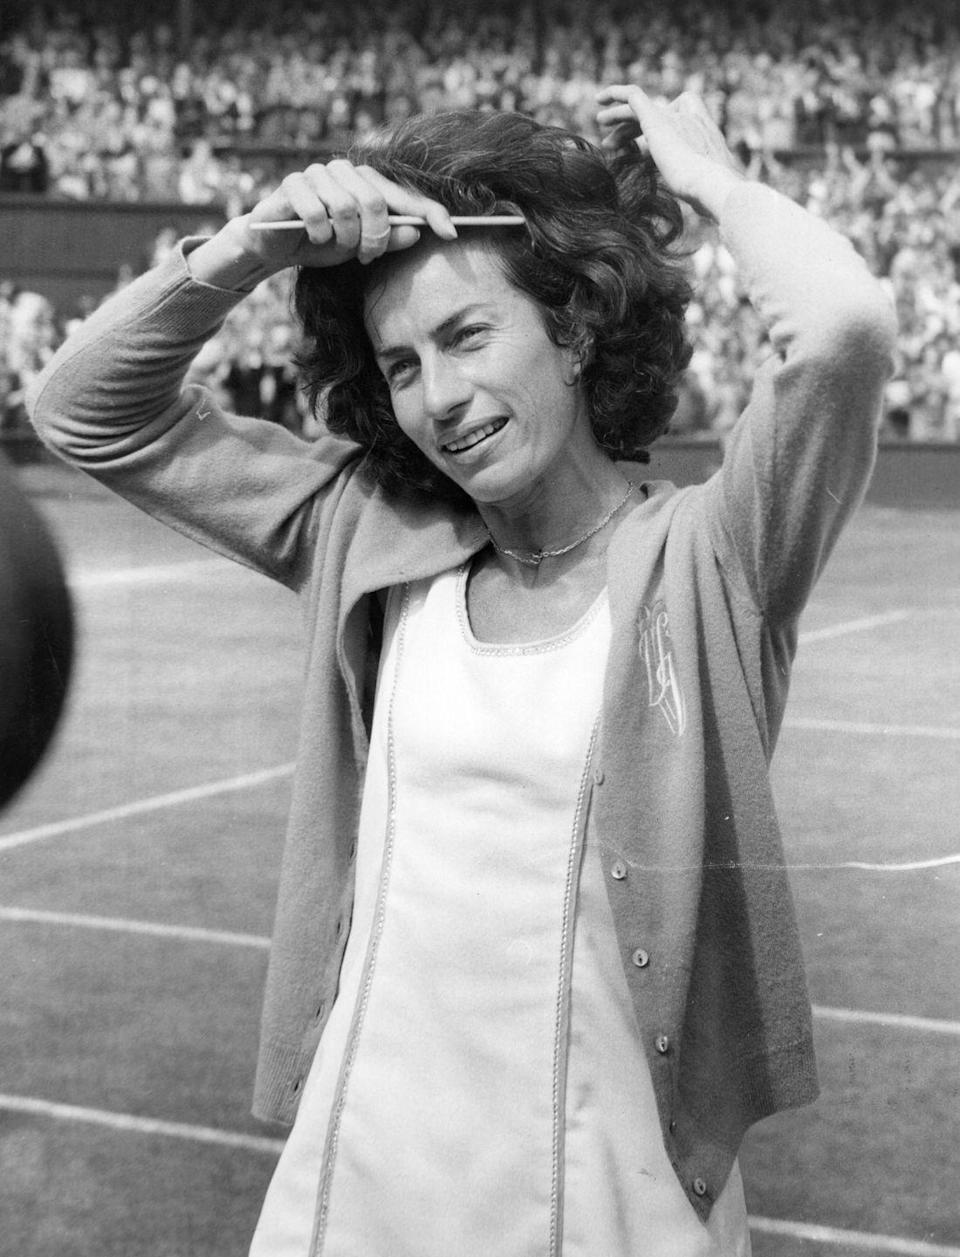 <p>British tennis player Virginia Wade combing her hair as she prepares to meet the Queen after her victory in the Women's Singles Final at Wimbledon in 1977.</p>